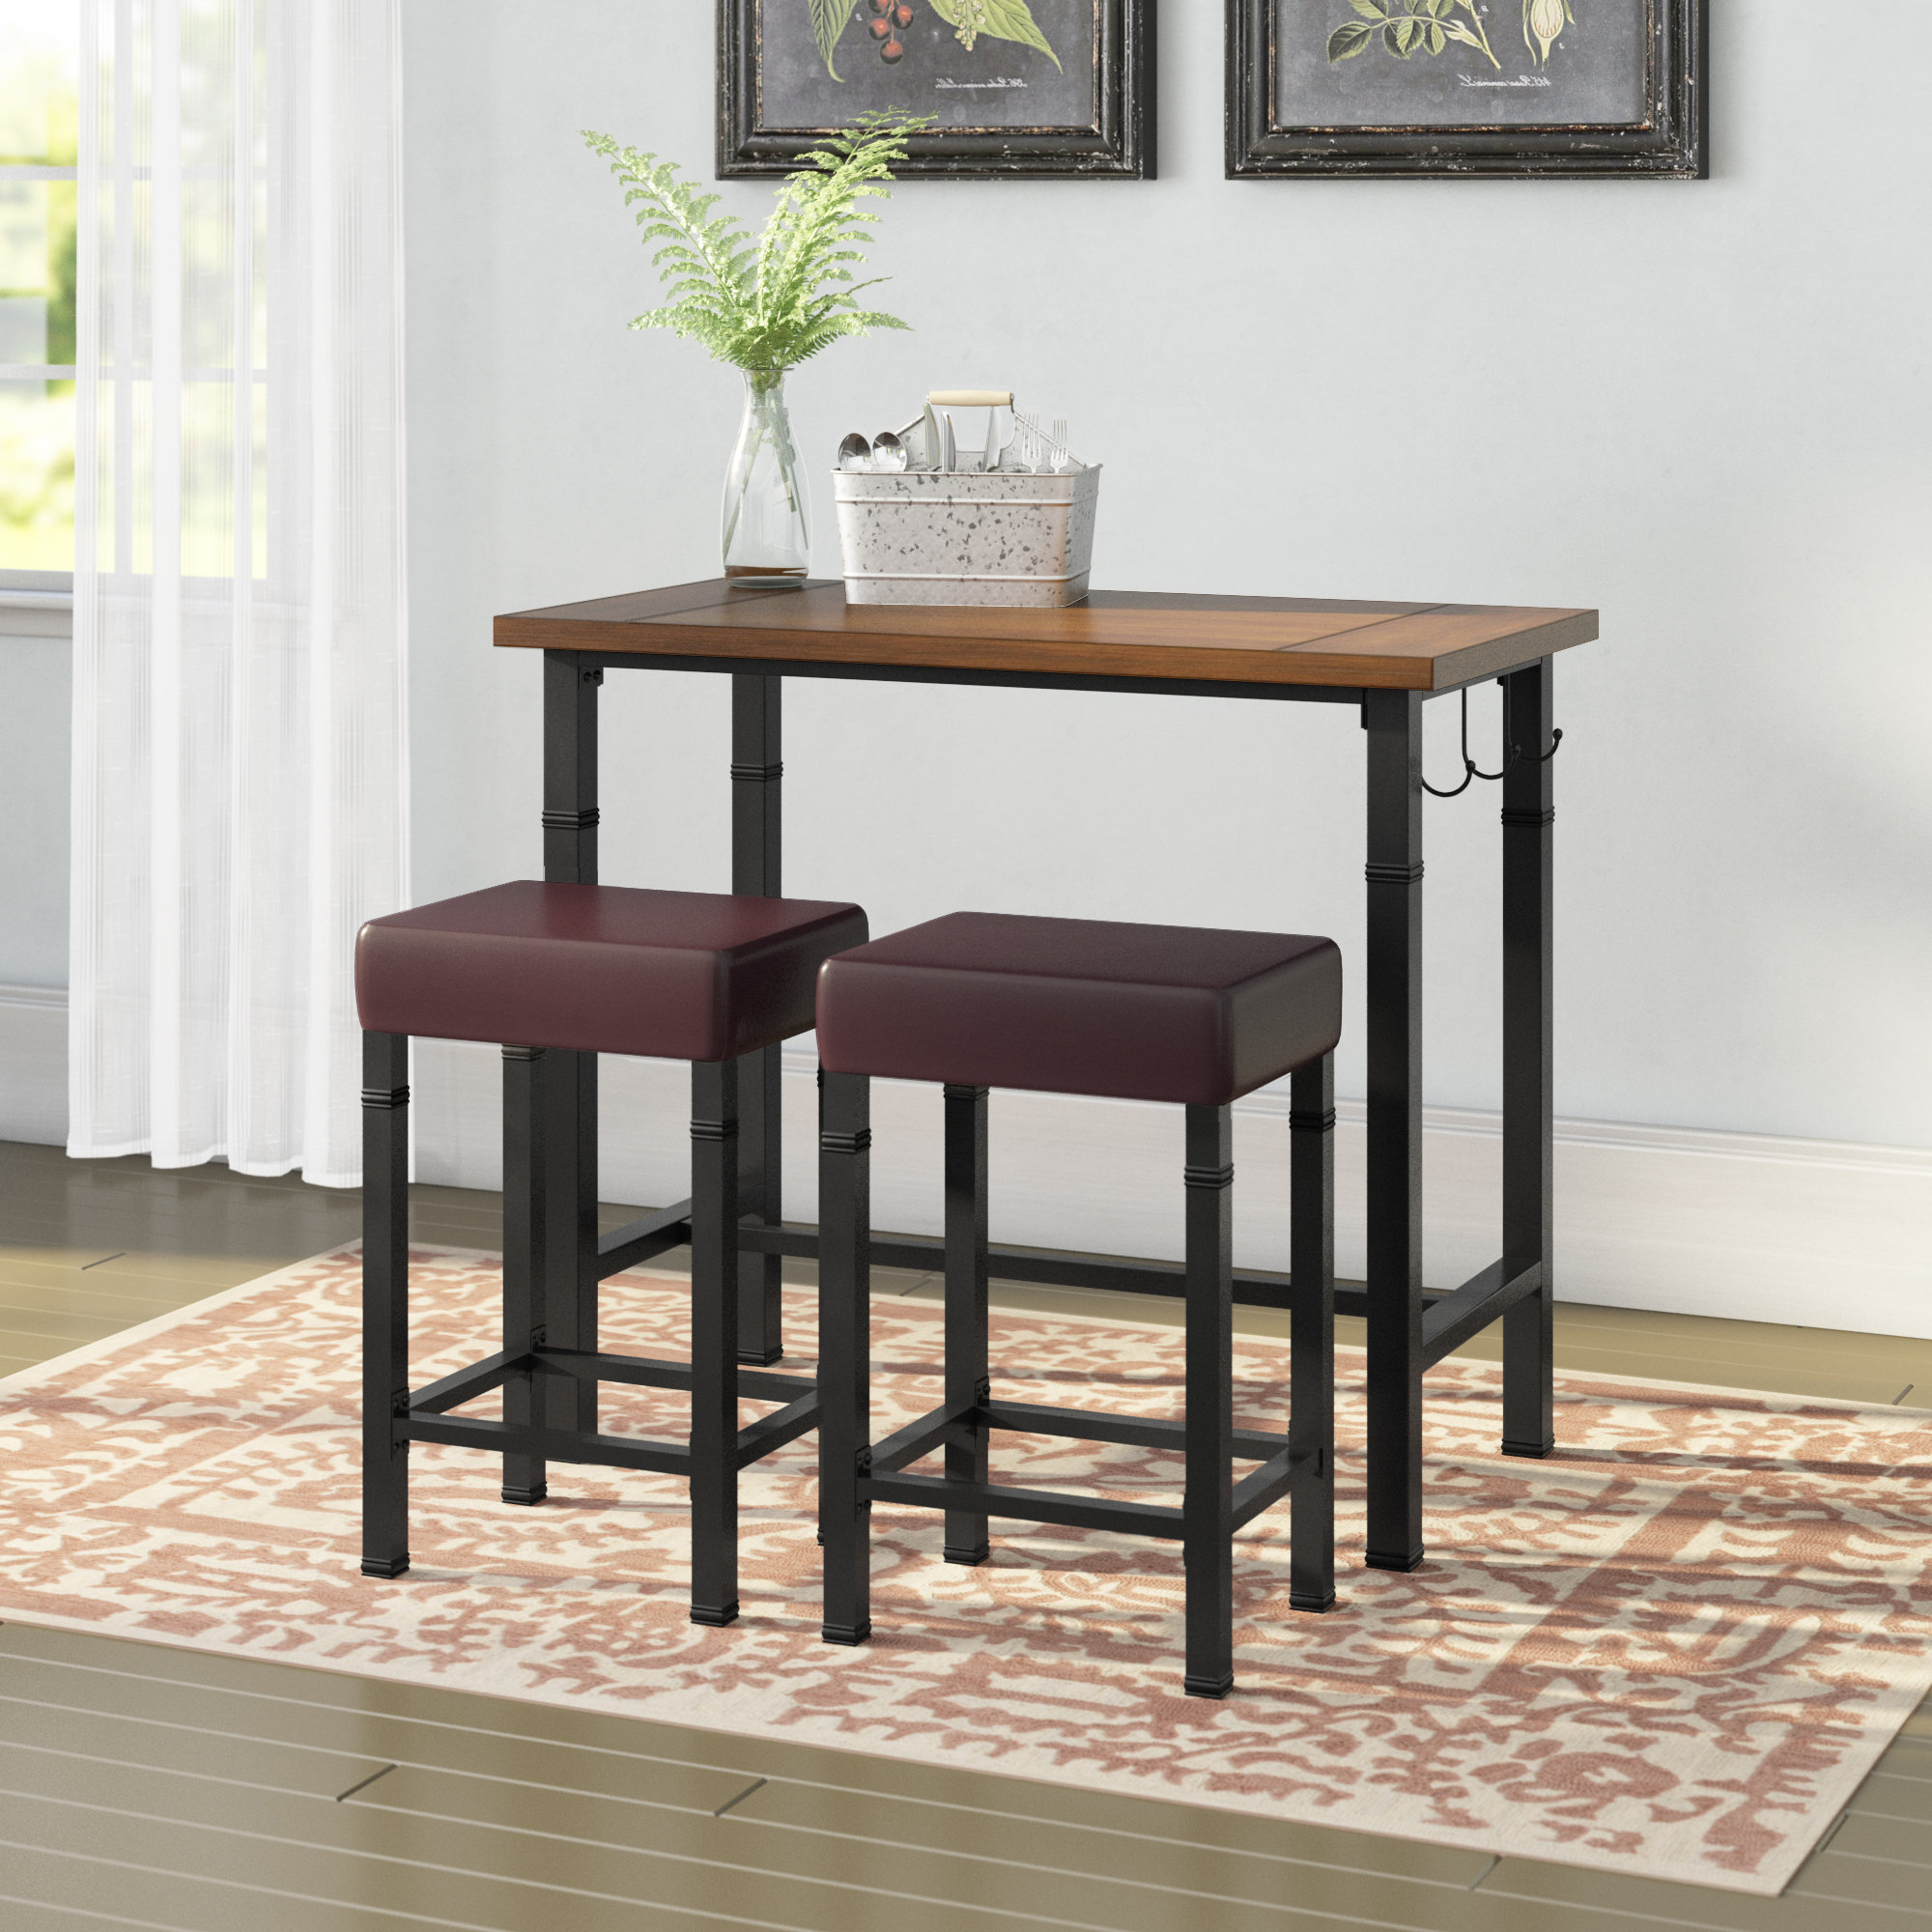 Springfield 3 Piece Dining Sets With Well Known Laurel Foundry Modern Farmhouse Sevigny 3 Piece Pub Table Set (View 22 of 25)